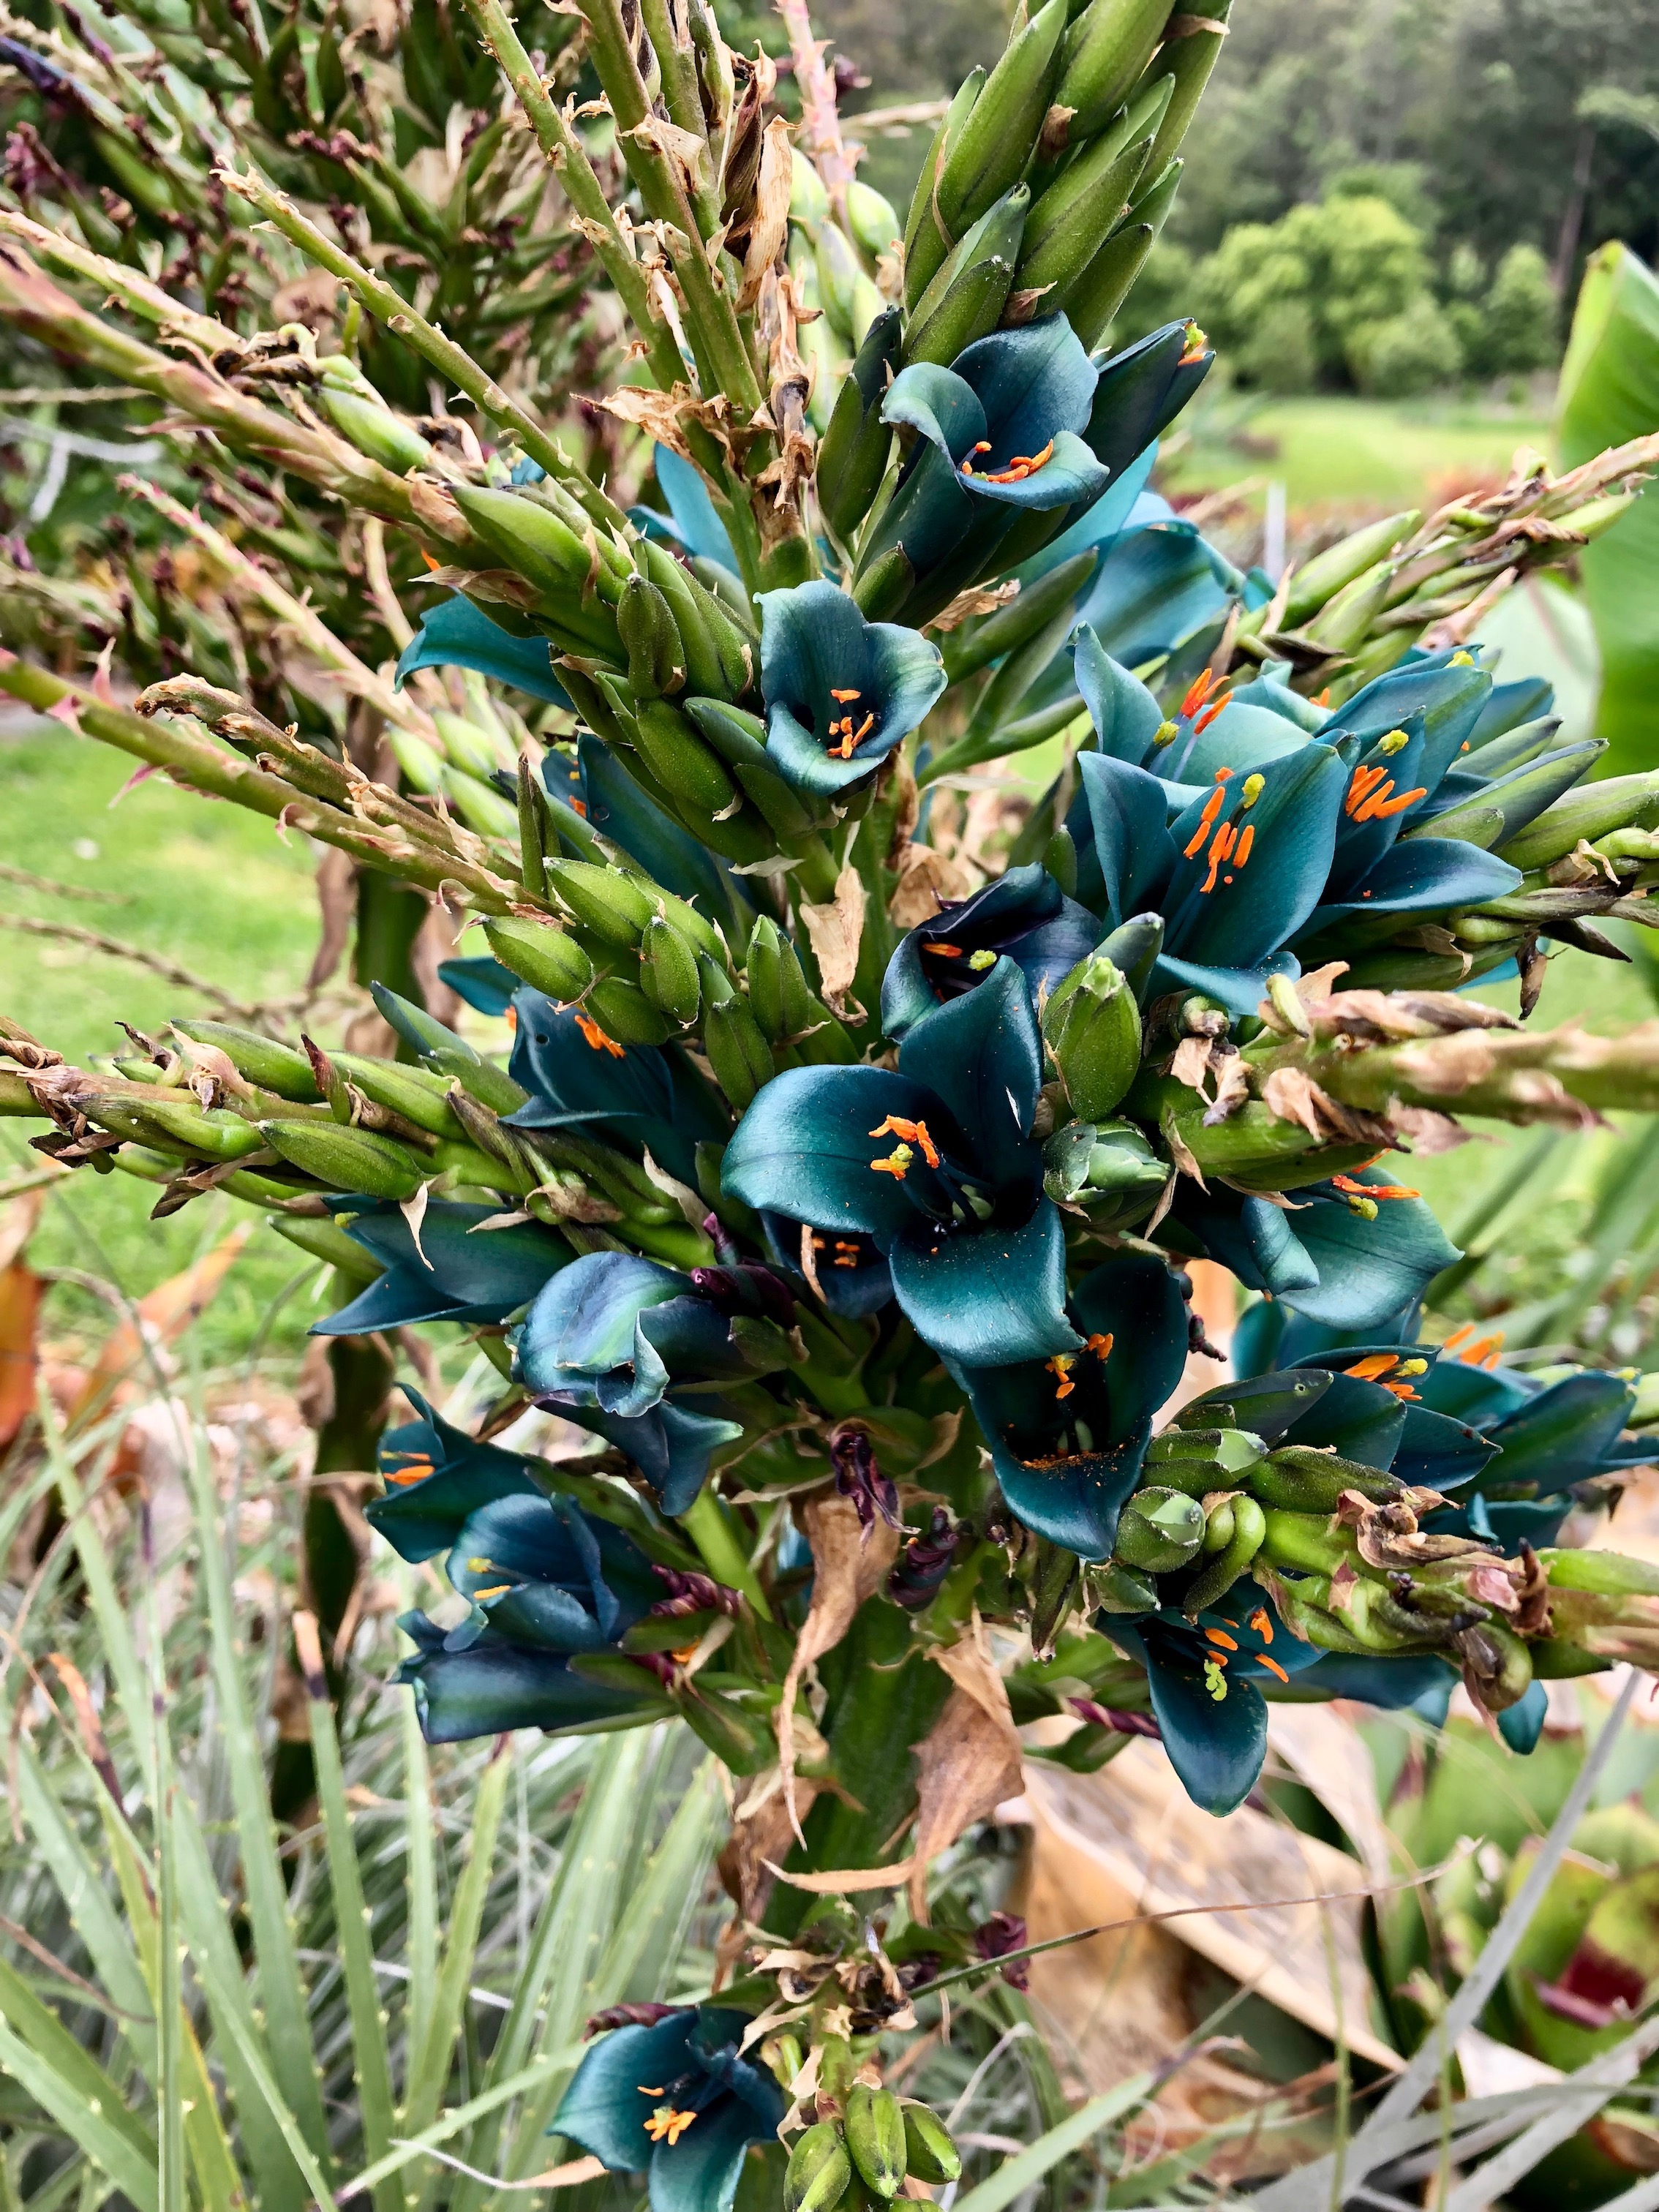 Puya chilensis alluring metallic turquoise flowers